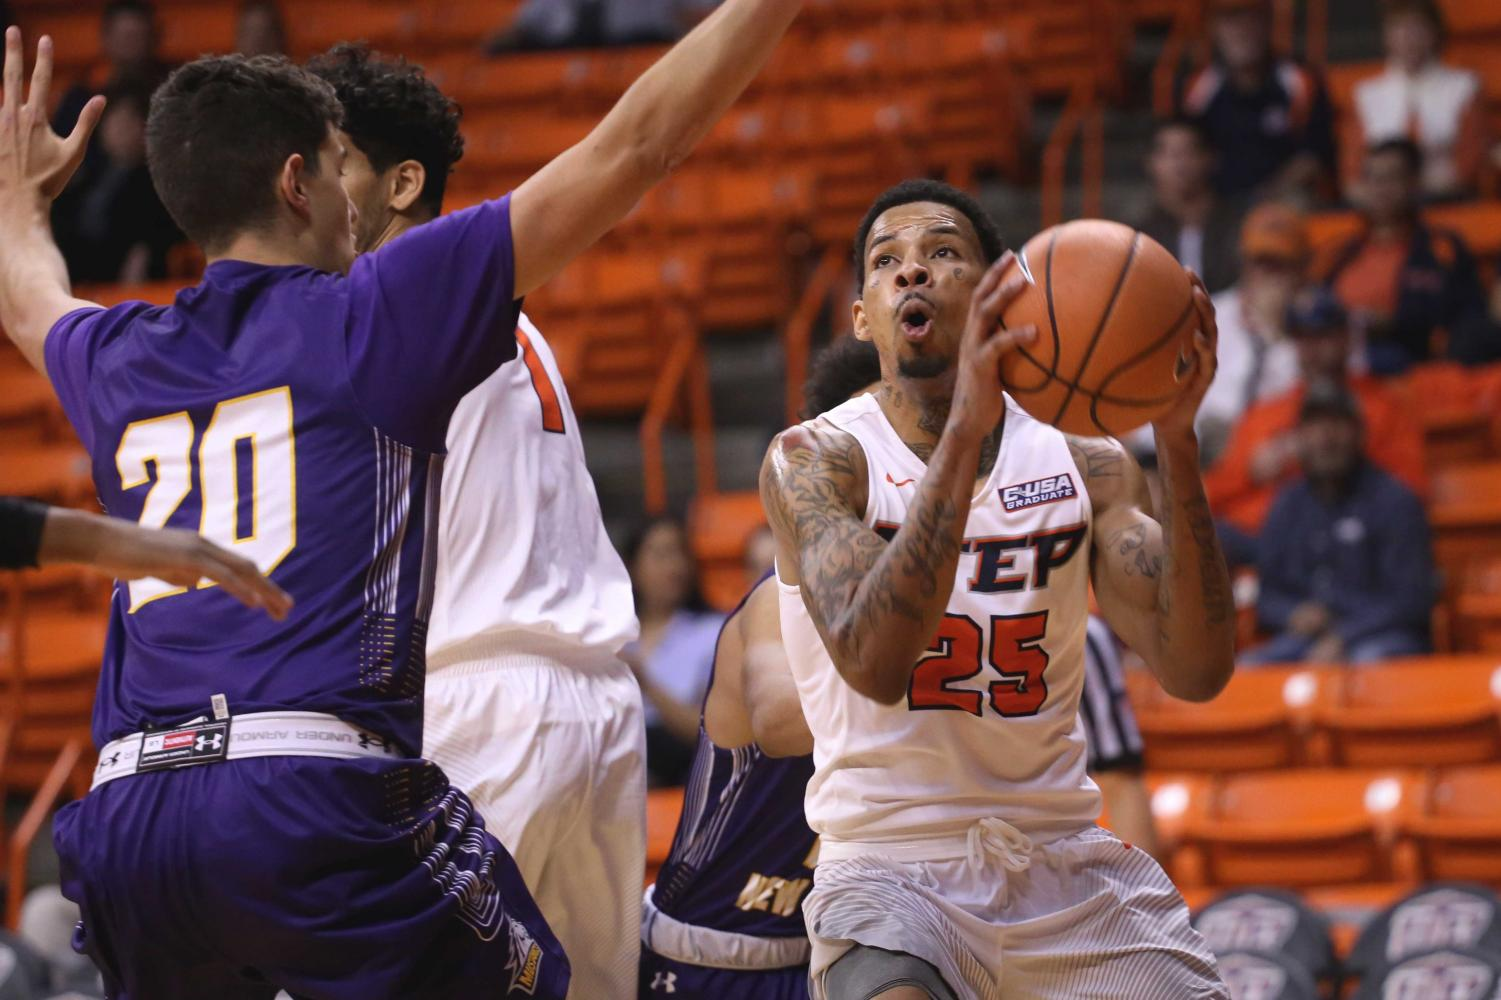 The Miners face Louisiana College in their 2017-18 season opener this Friday night.